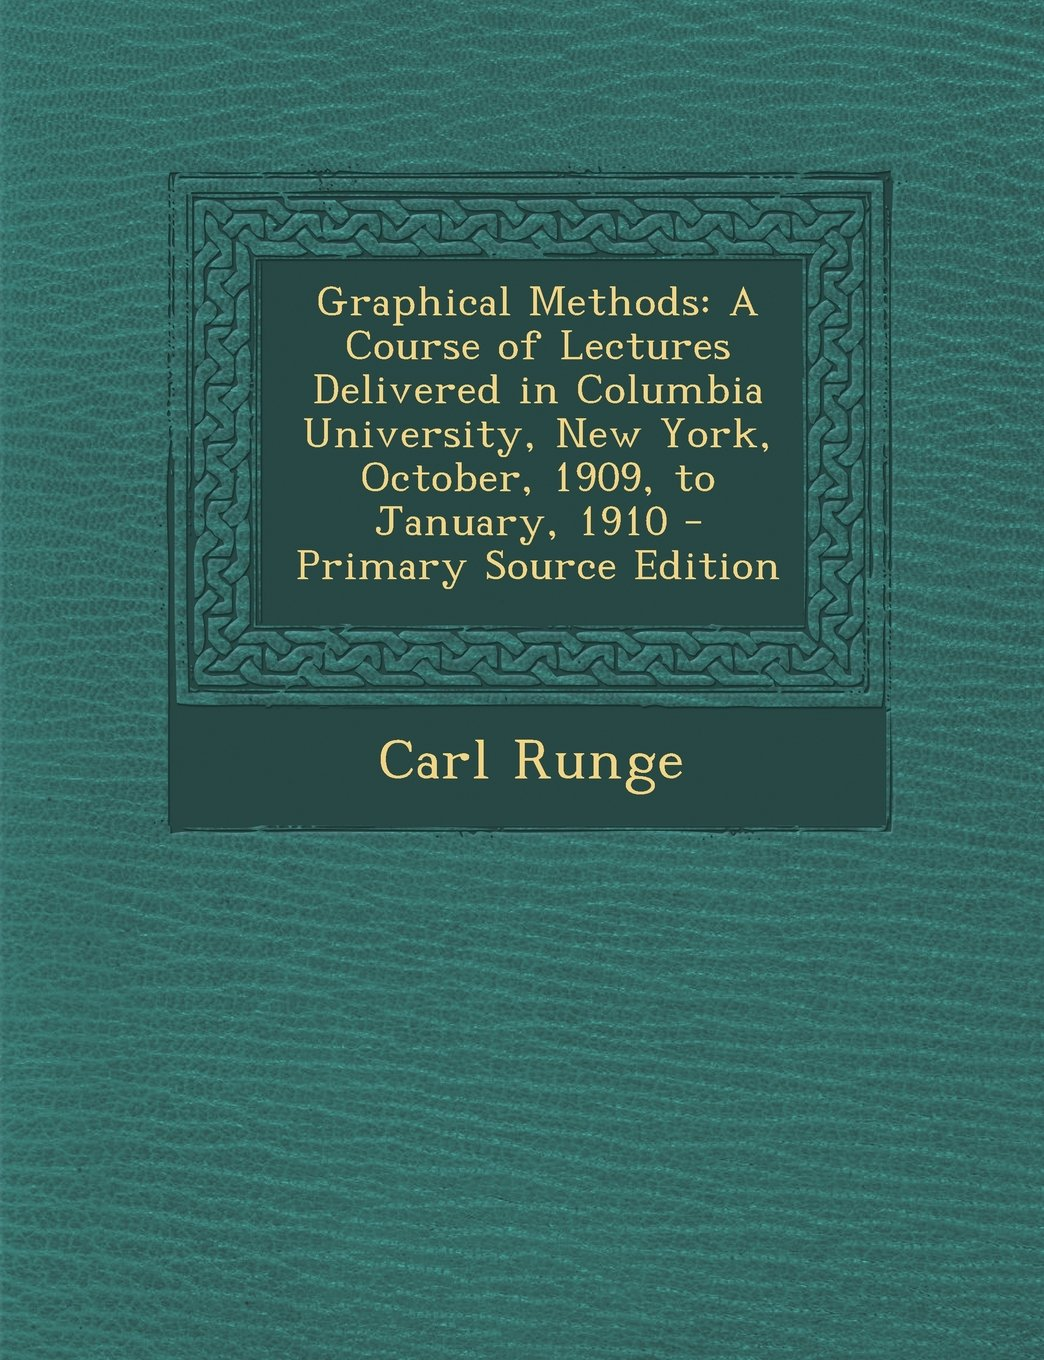 Graphical Methods: A Course of Lectures Delivered in Columbia University, New York, October, 1909, to January, 1910 - Primary Source Edit pdf